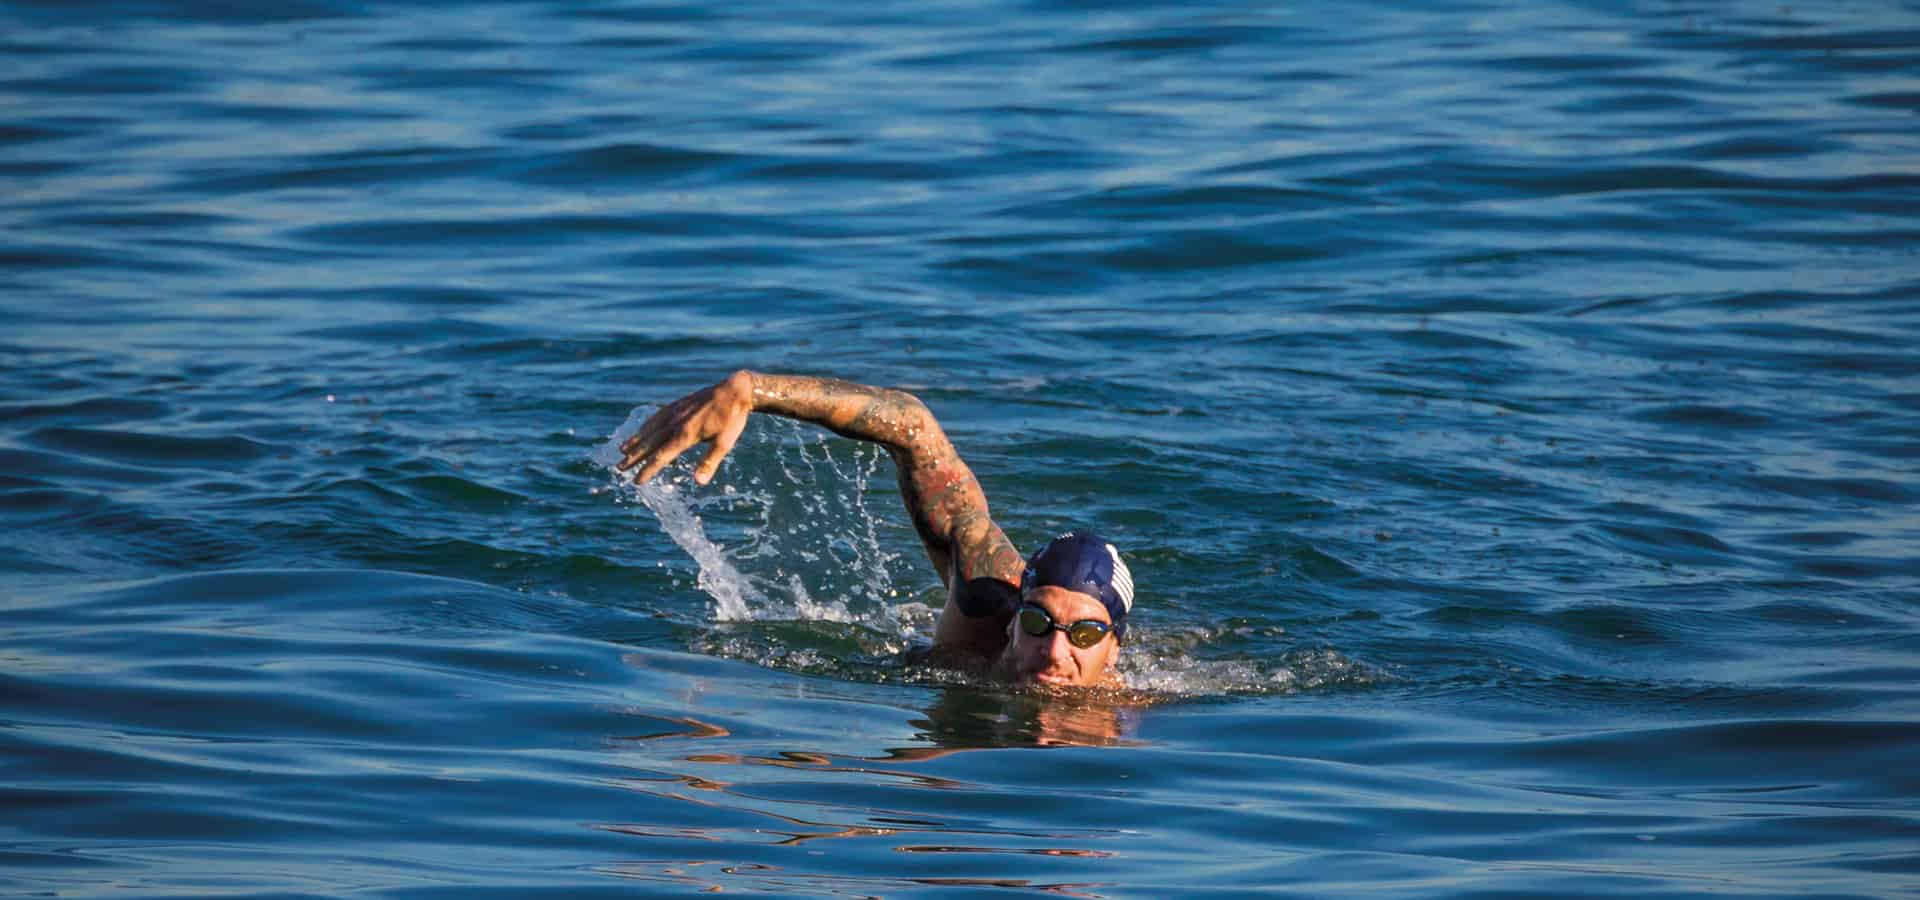 The Golden State Triathlon and Super Sprint Triathlon